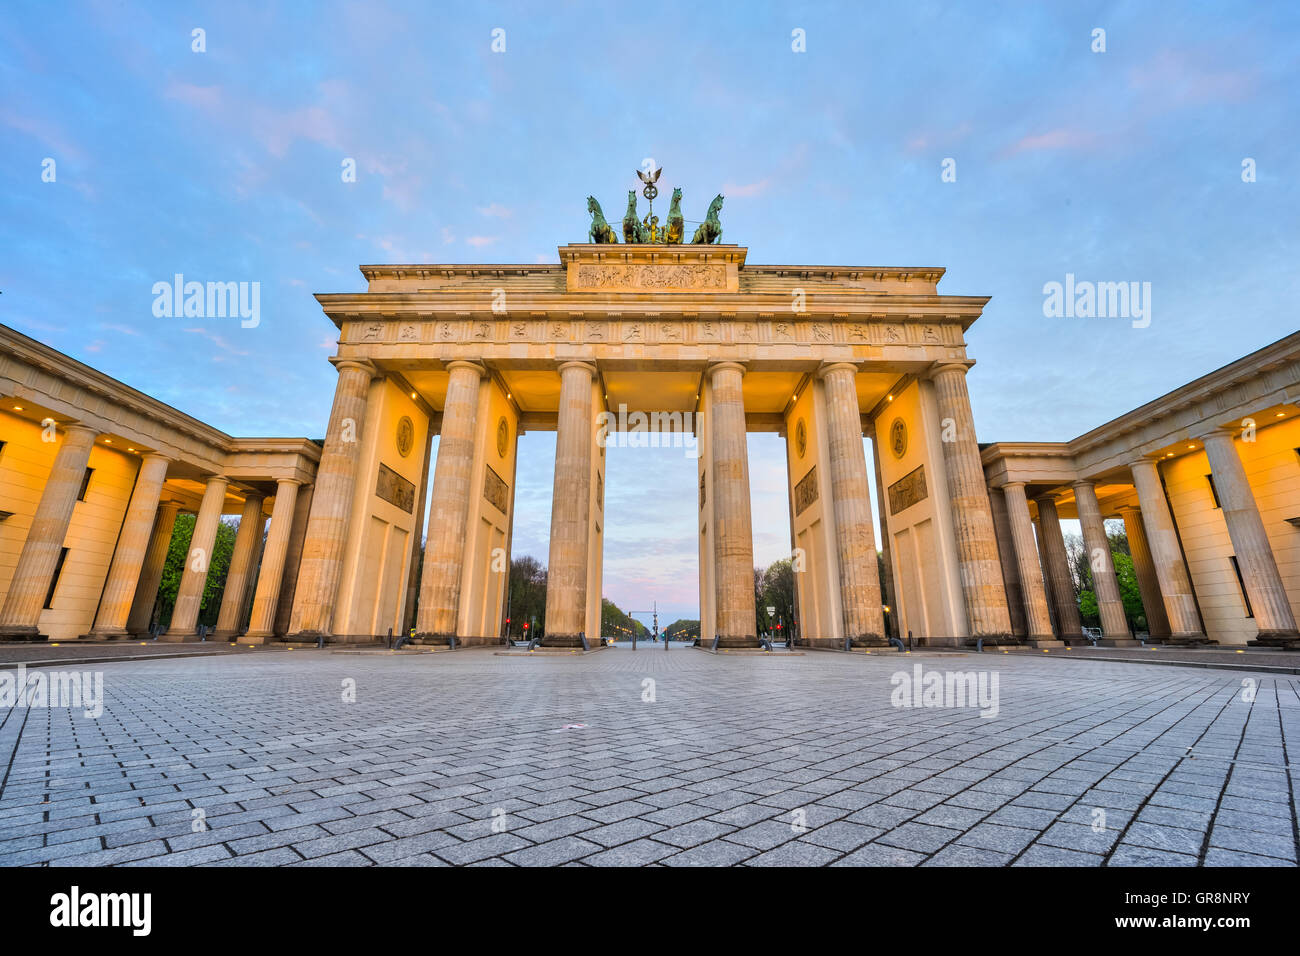 La porte de Brandebourg à Berlin, Allemagne. Photo Stock